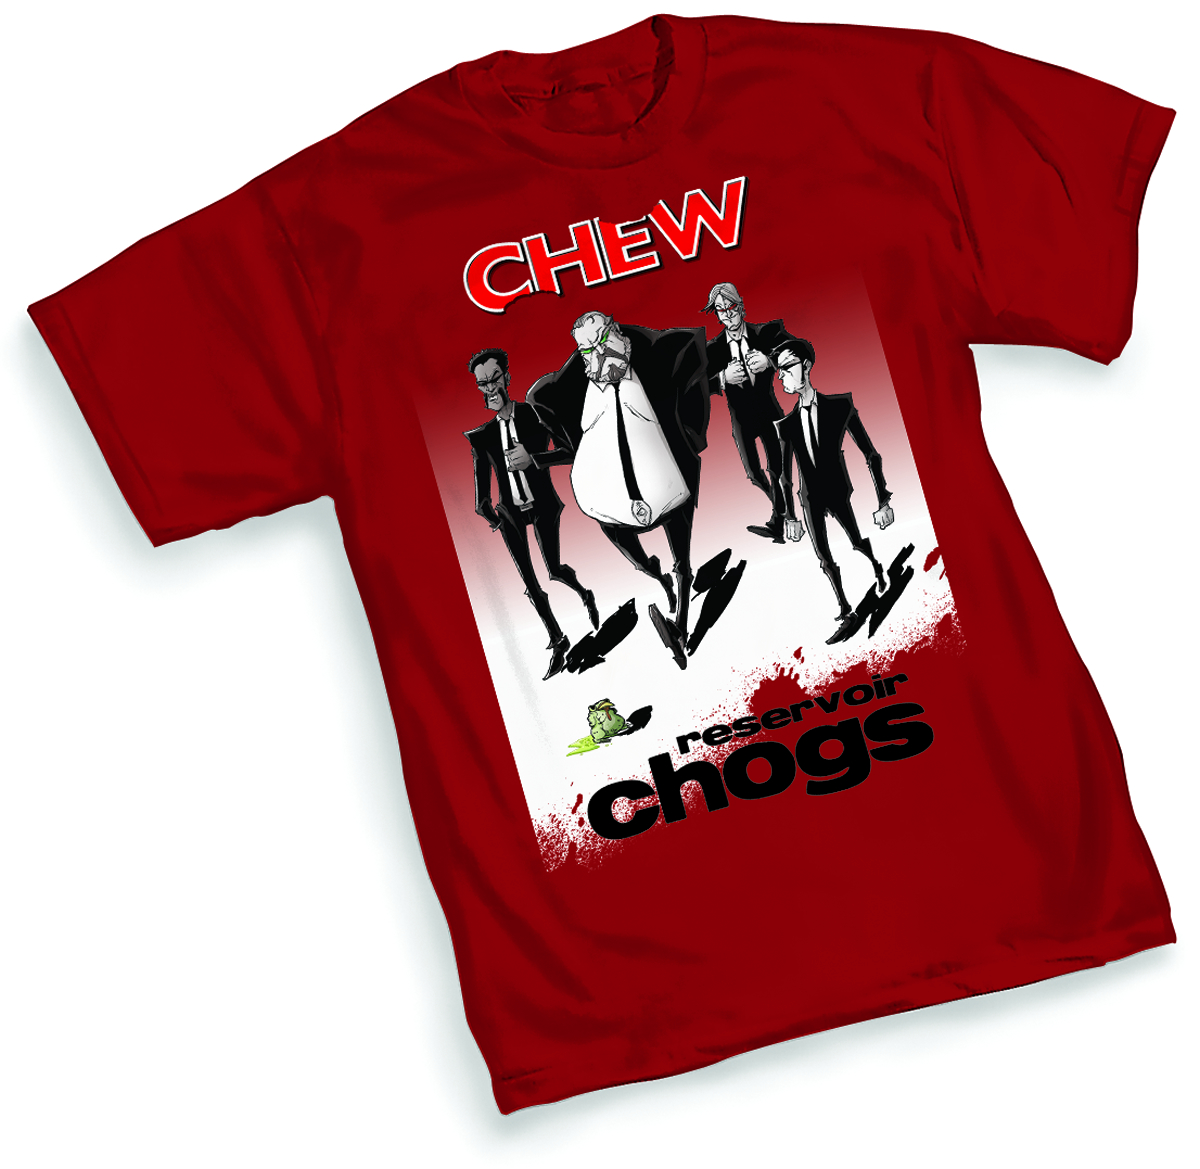 CHEW RESERVOIR CHOGS BY GUILLORY T/S MED